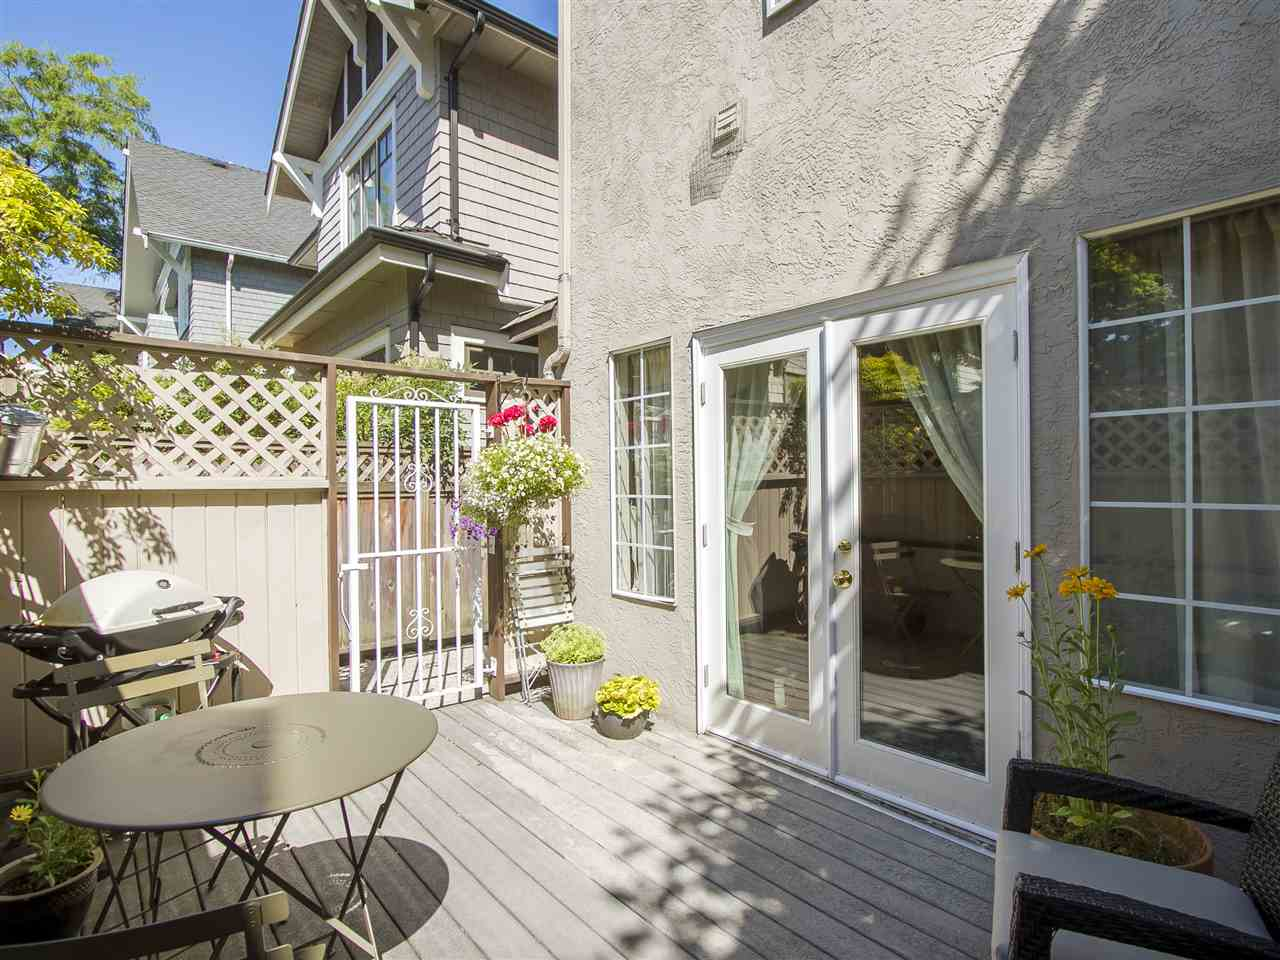 Photo 10: 314 W 15TH Avenue in Vancouver: Mount Pleasant VW Townhouse for sale (Vancouver West)  : MLS(r) # R2186637